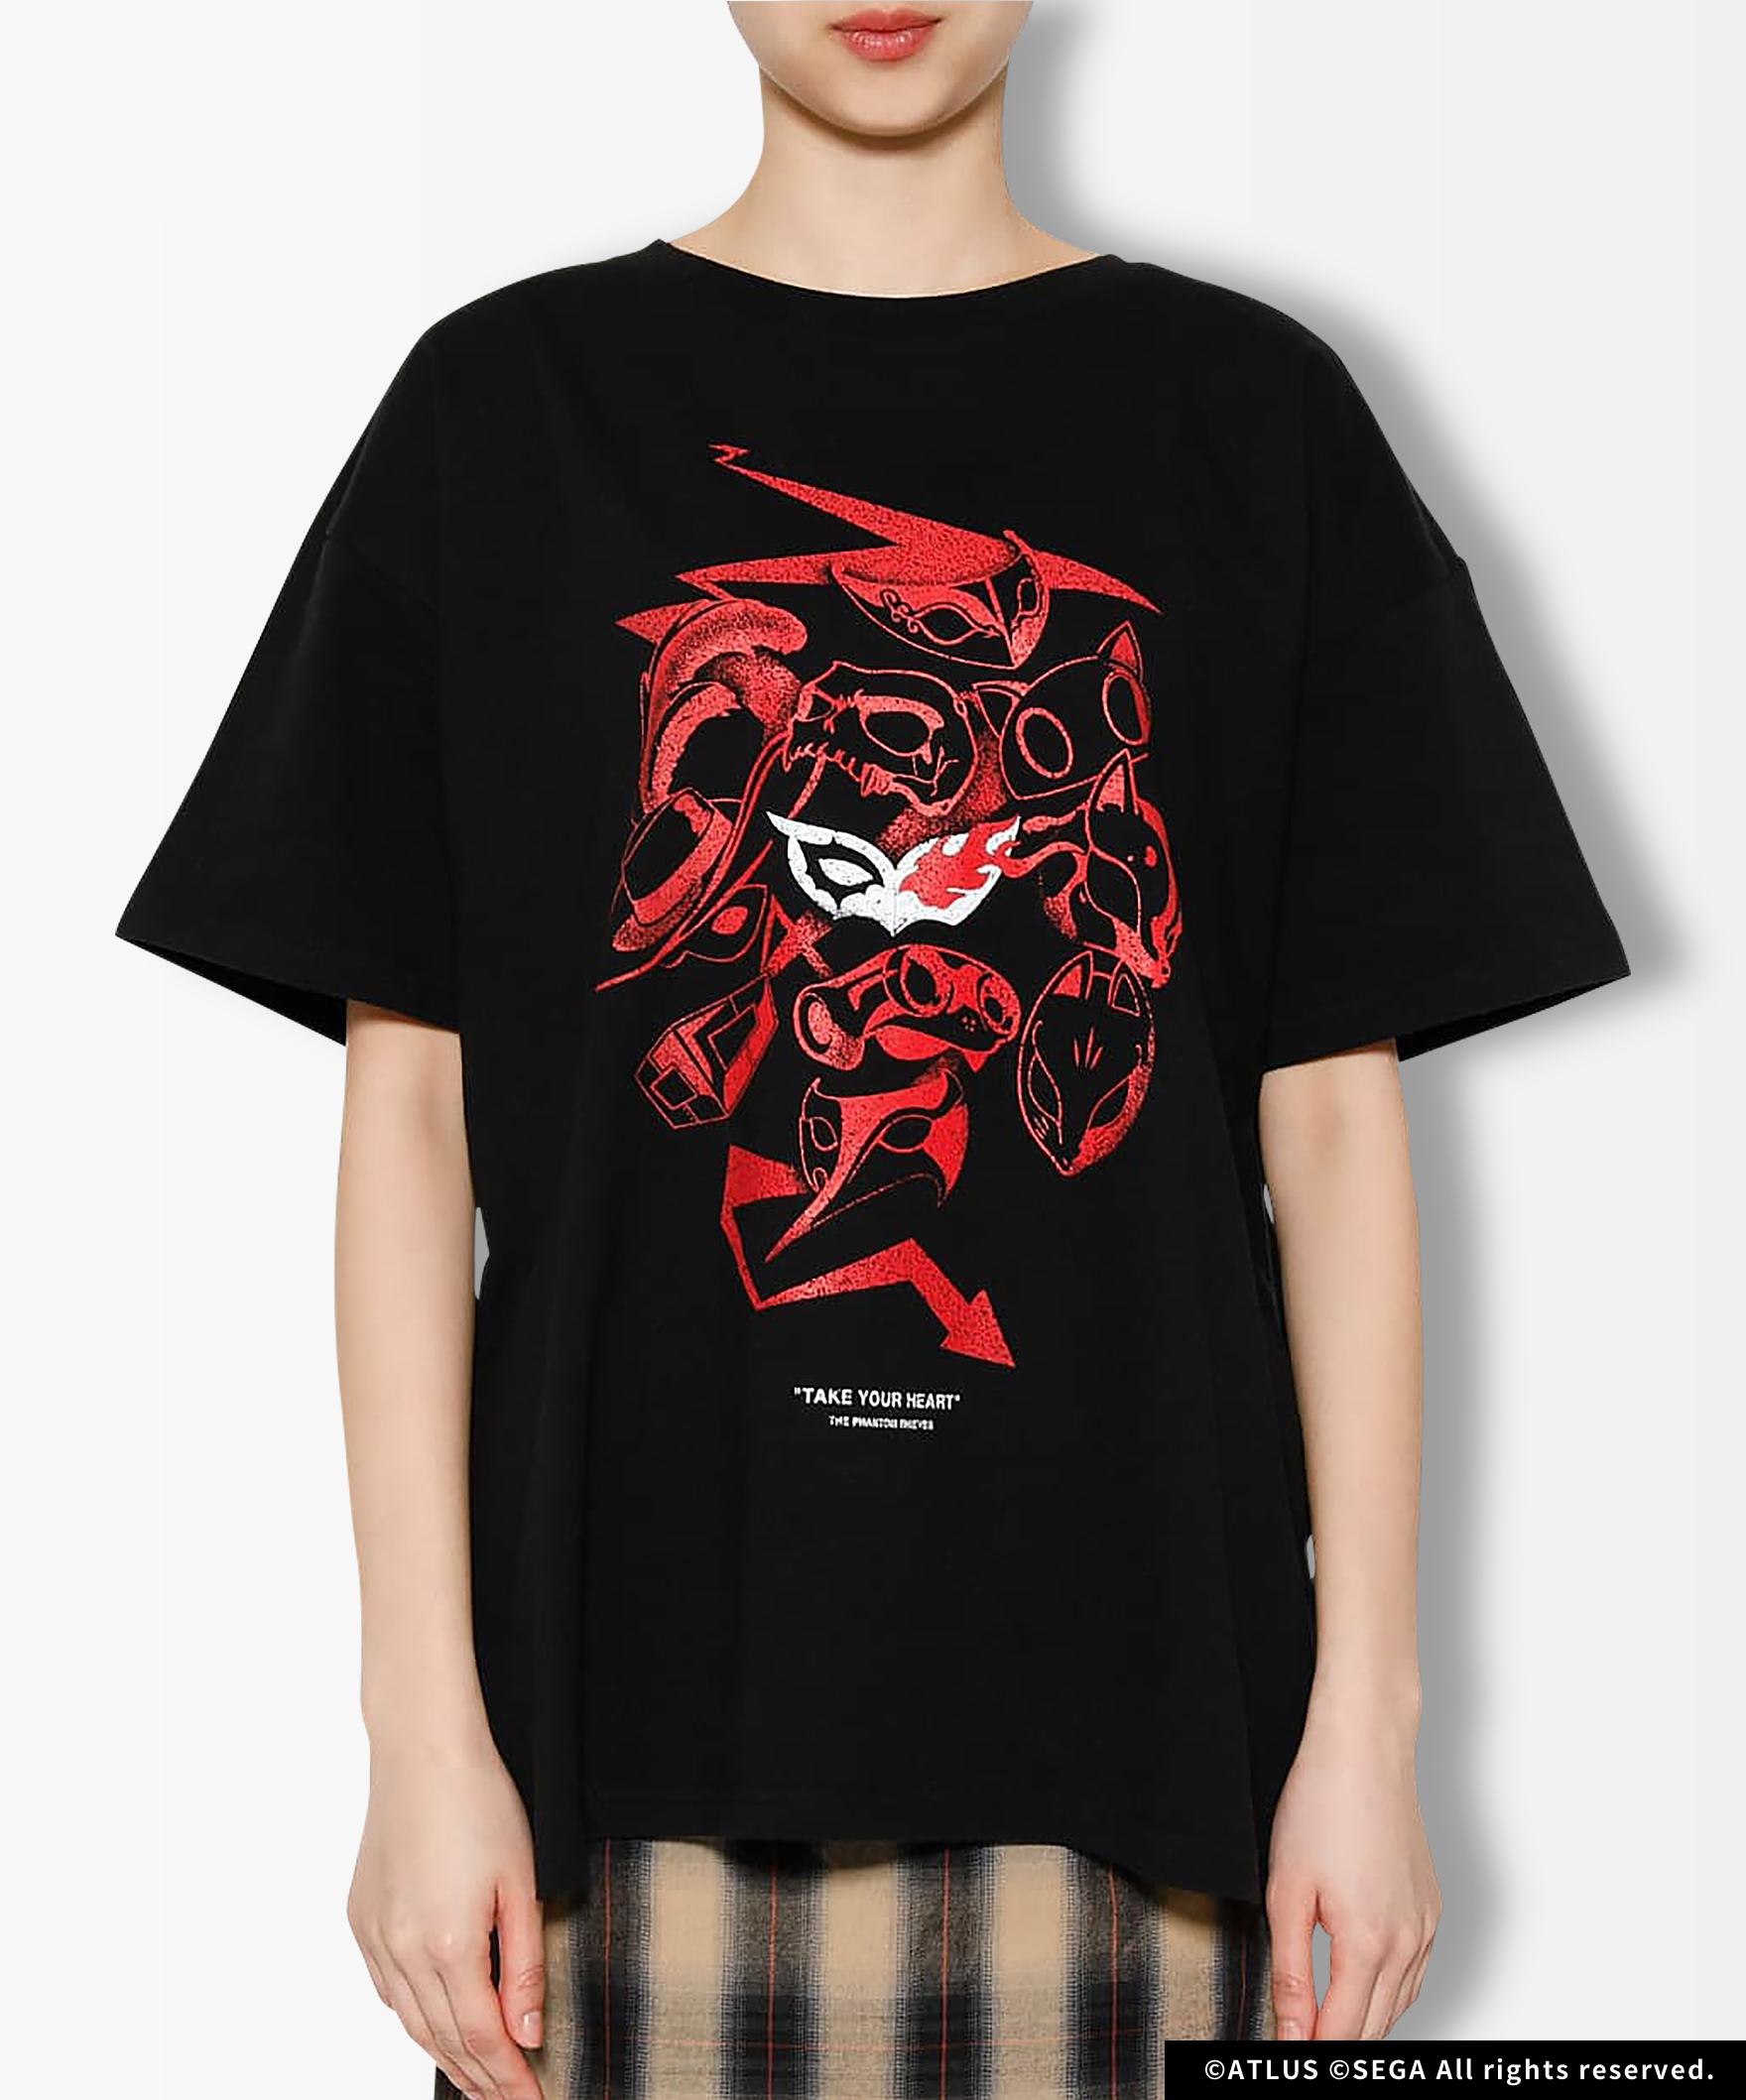 P5R THE PHANTOM ROCK Tシャツ